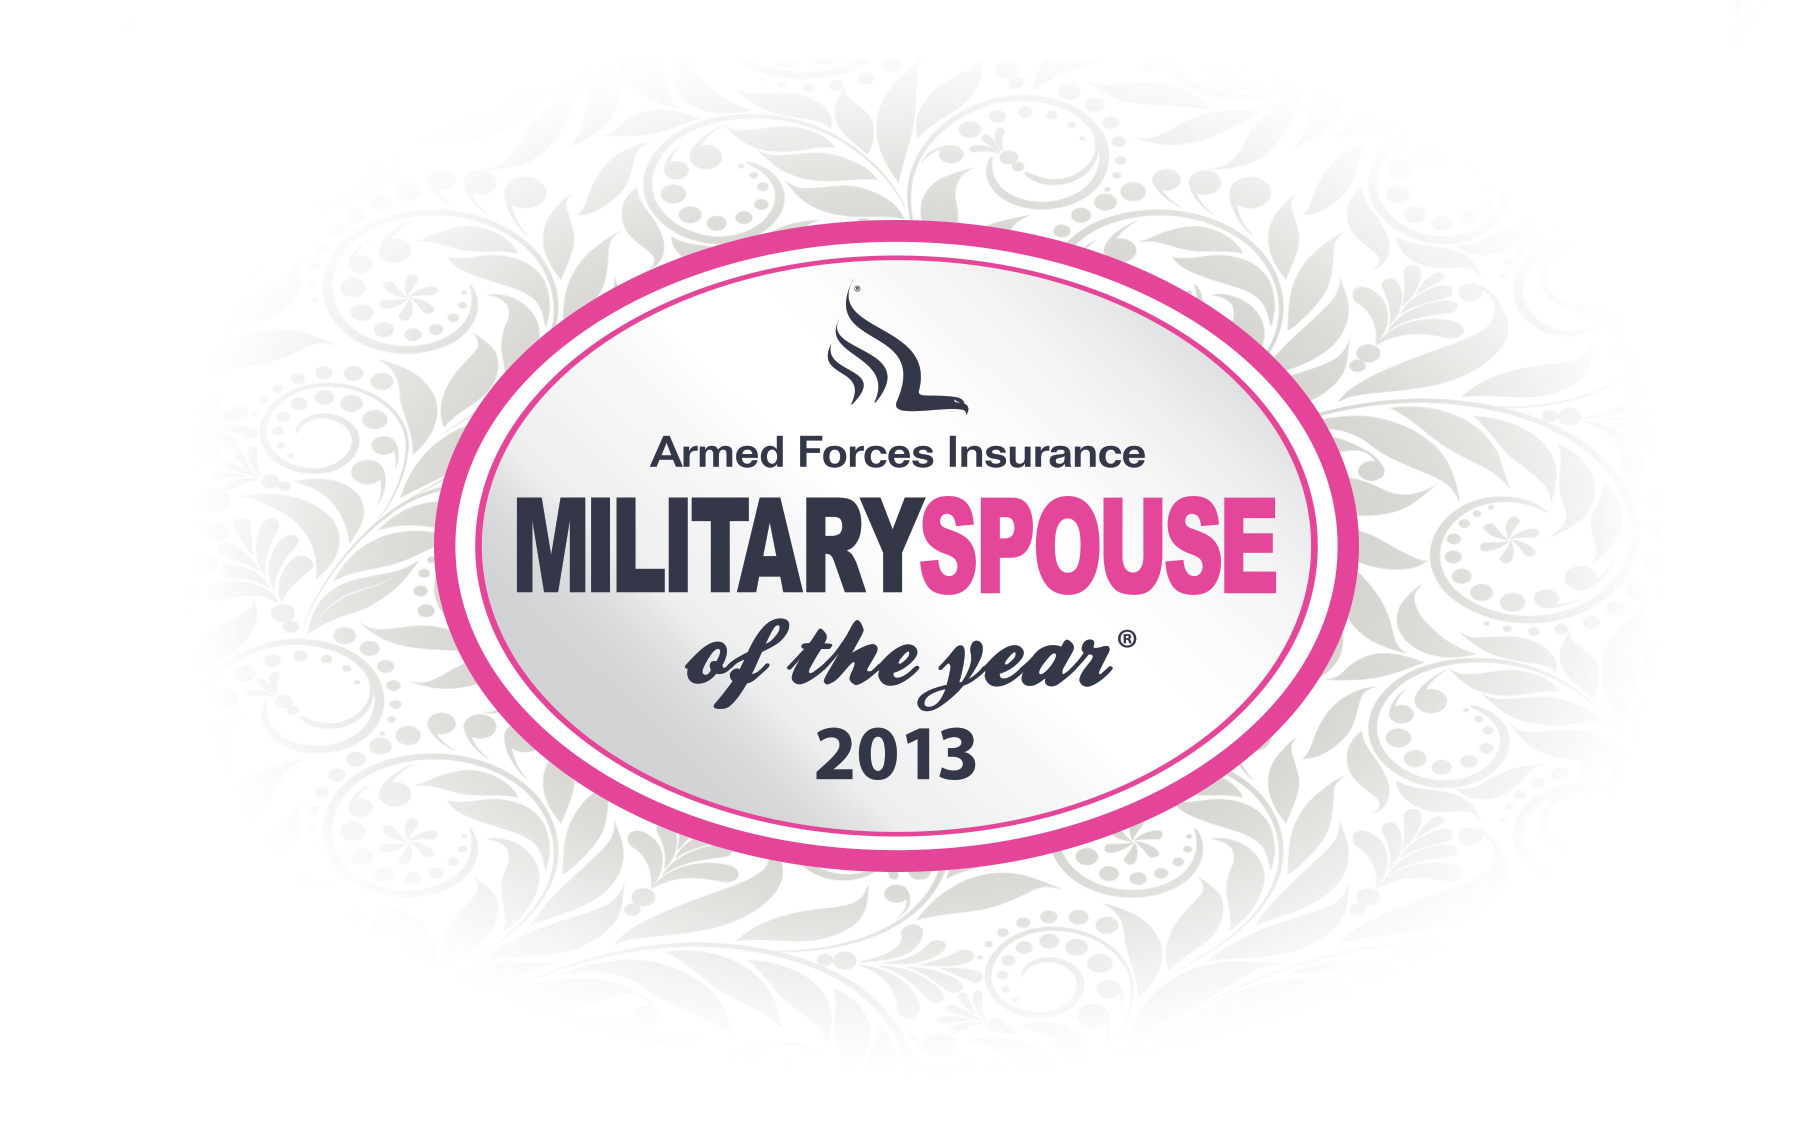 Armed Forces Insurance Military Spouse of the Year Logo redesign